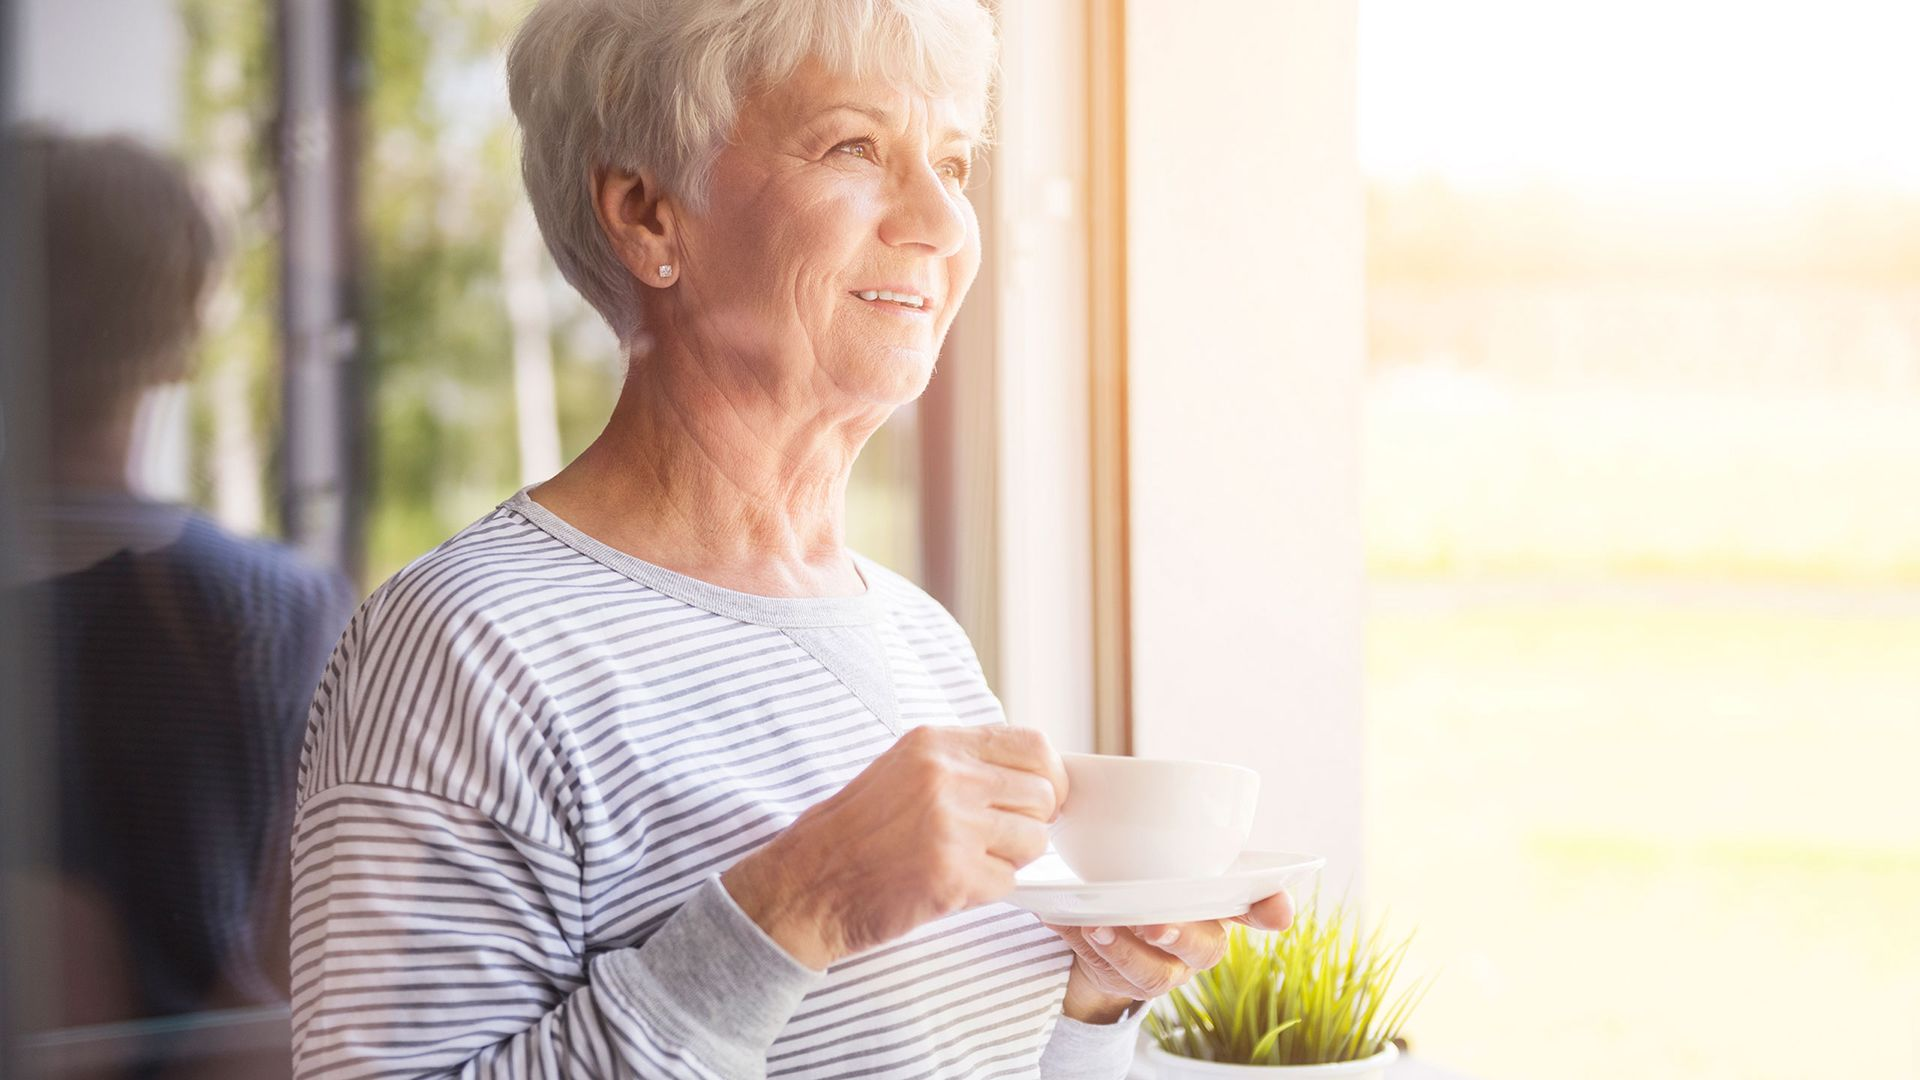 Living Well With COPD: 6 Expert Tips